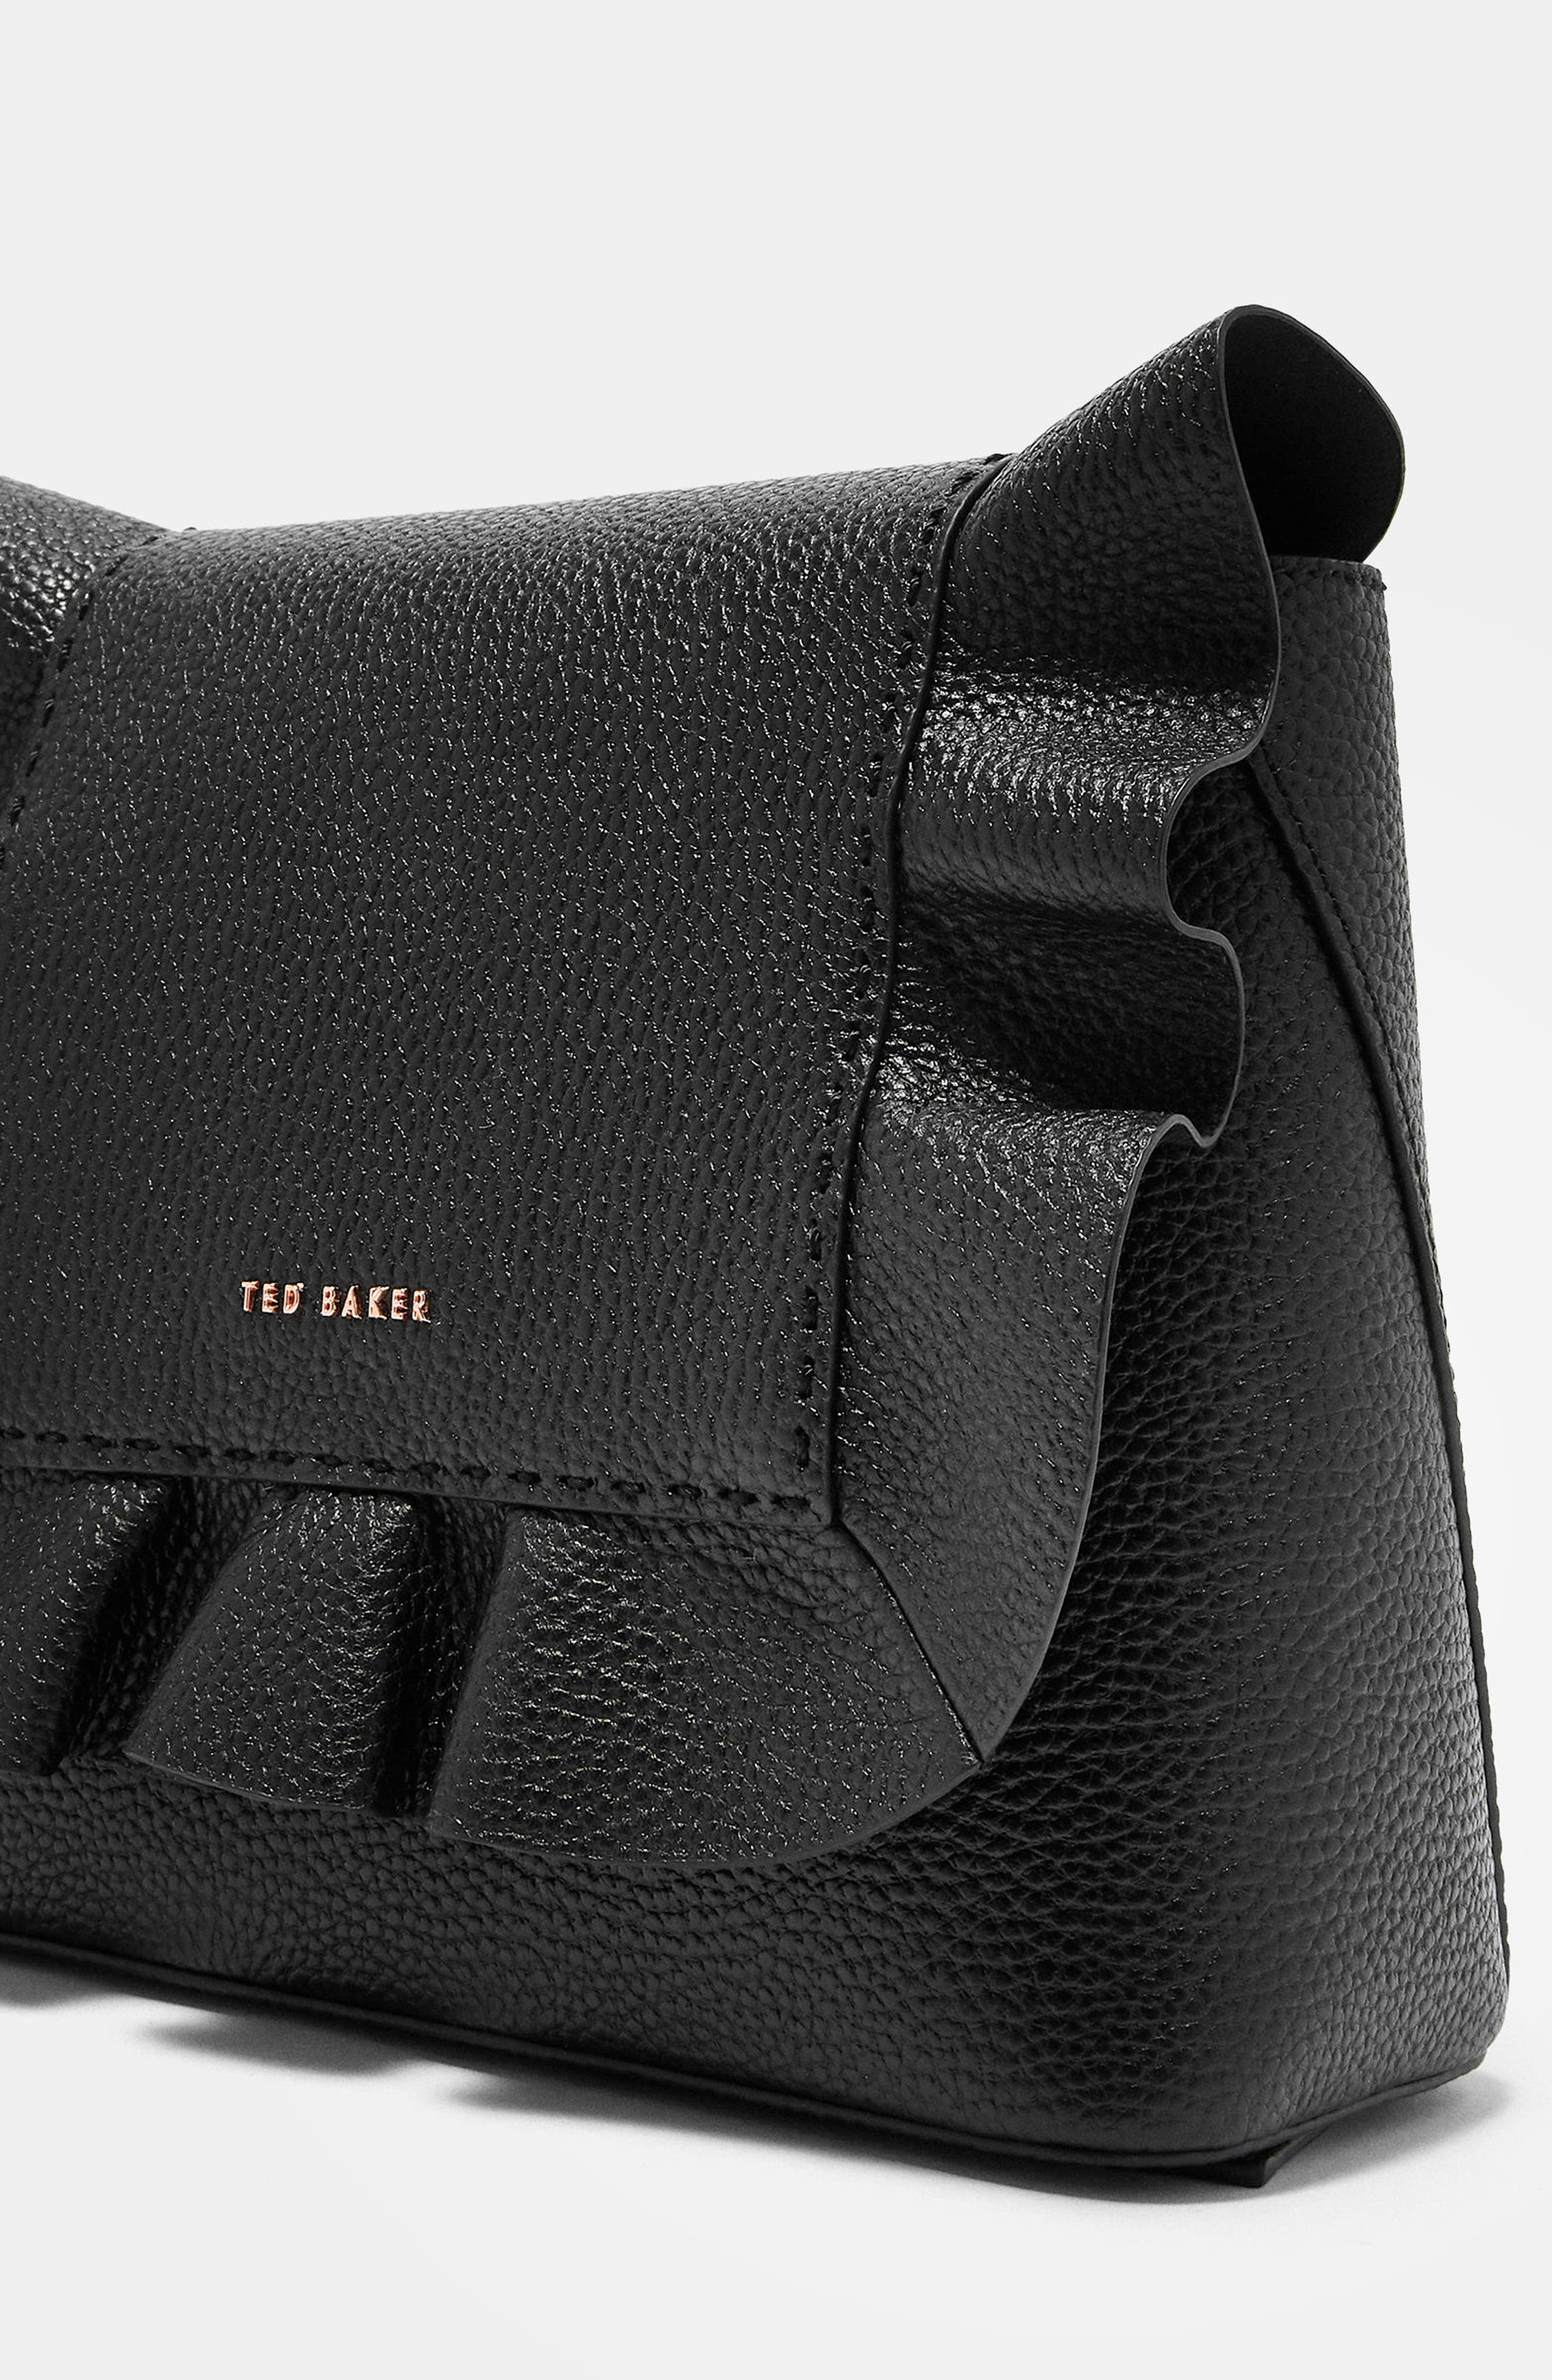 Rammira Leather Convertible Backpack,                             Alternate thumbnail 4, color,                             001